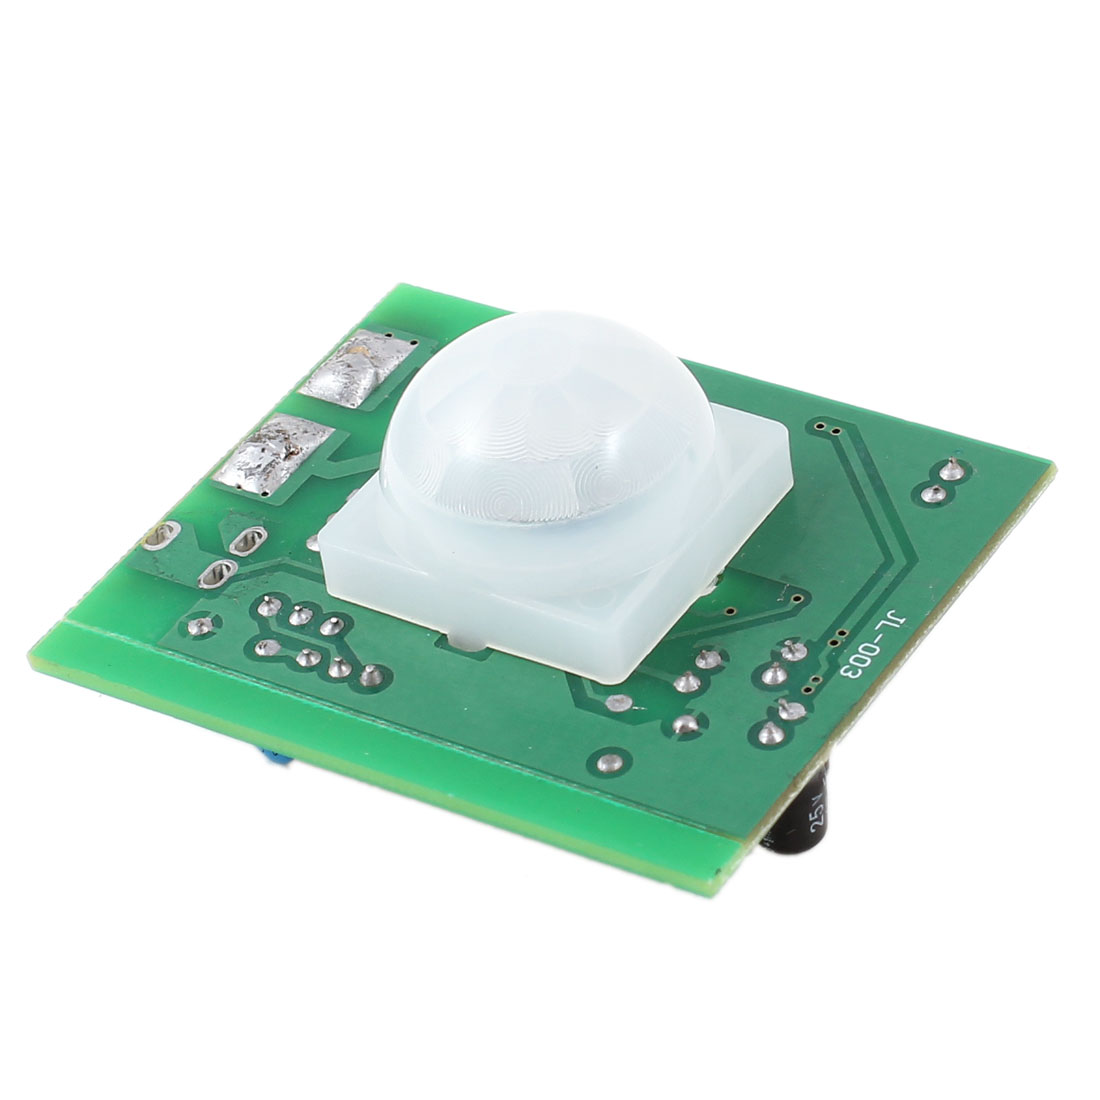 JL-003A Wall Mounting Pyroelectric Infrared Motion Sensor Detector Module 150V-250V